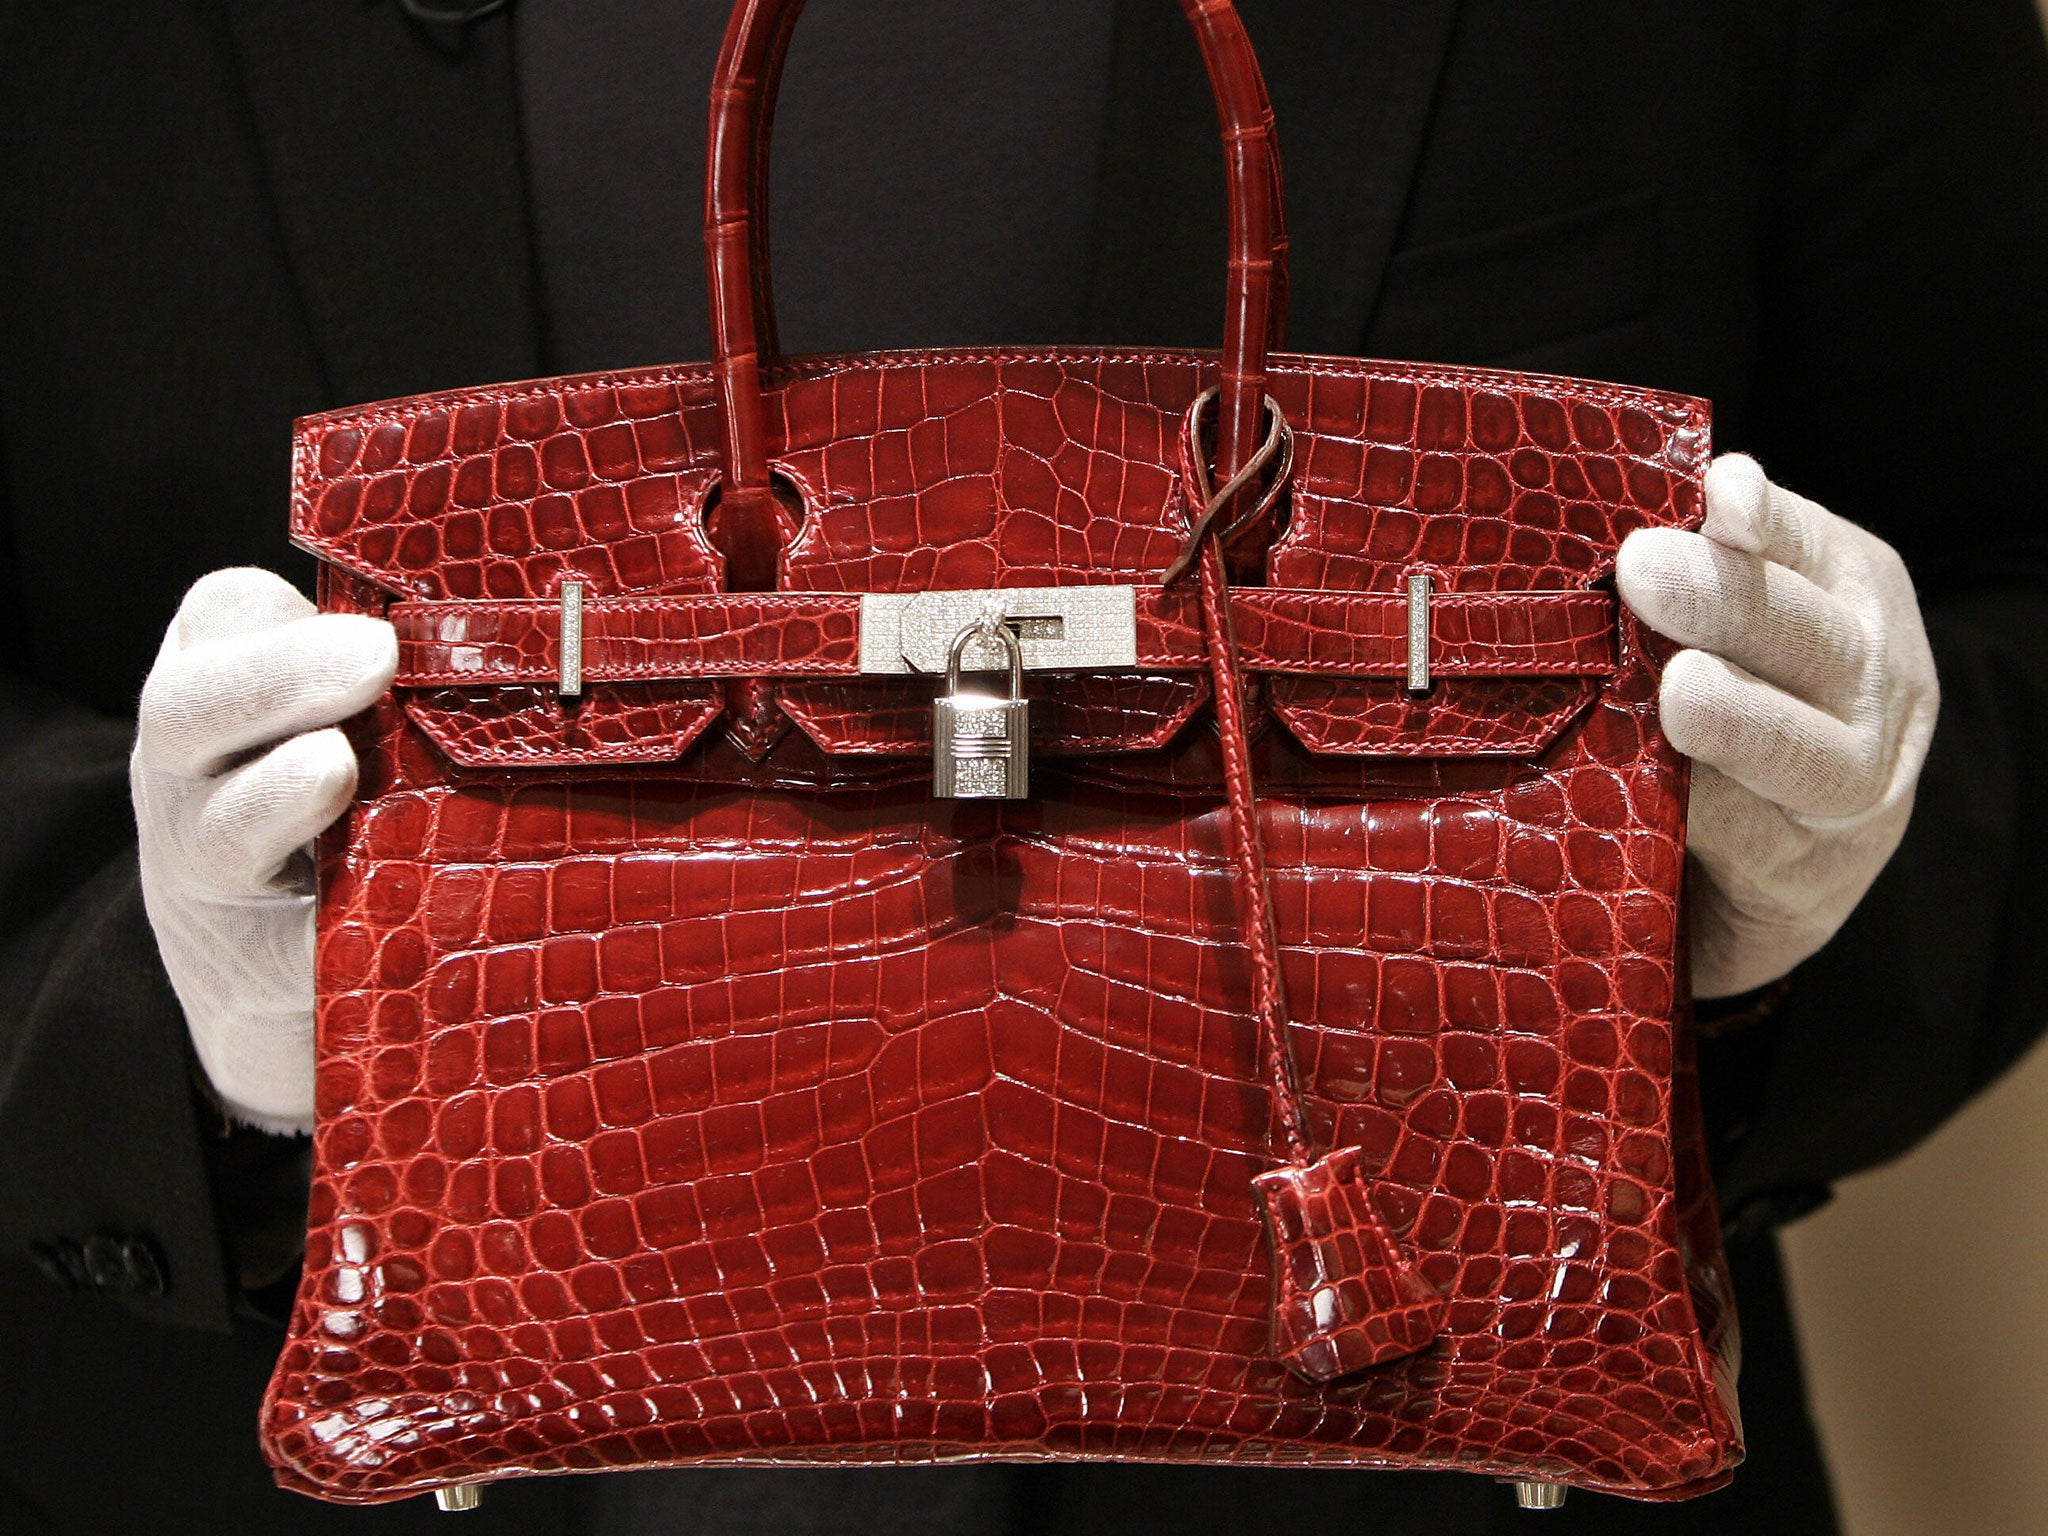 A Hermes Birkin Bag Is Better Investment Than Stocks Or Gold